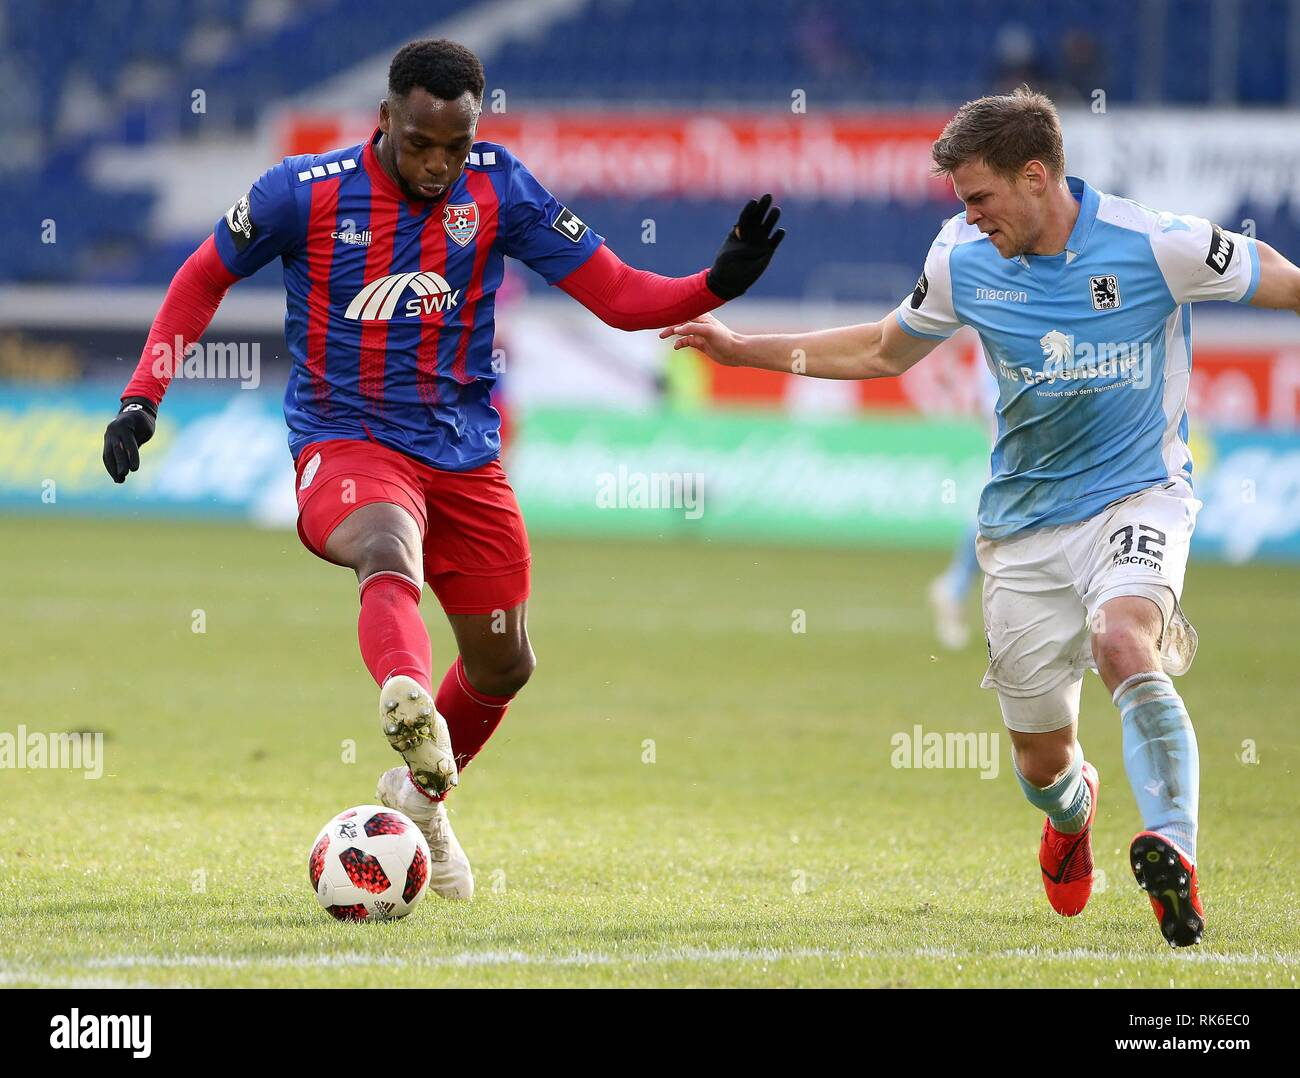 Duisburg, Deutschland. 09th Feb, 2019. firo: 09.02.2019 Football, 3. Bundesliga, season 2018/2019 KFC Uerdingen 05 - TSV 1860 Munich Osaywe Osawe (# 35, KFC Uerdingen 05) in duels with Simon Lorenz (# 32, TSV 1860 Munich) | usage worldwide Credit: dpa/Alamy Live News - Stock Image